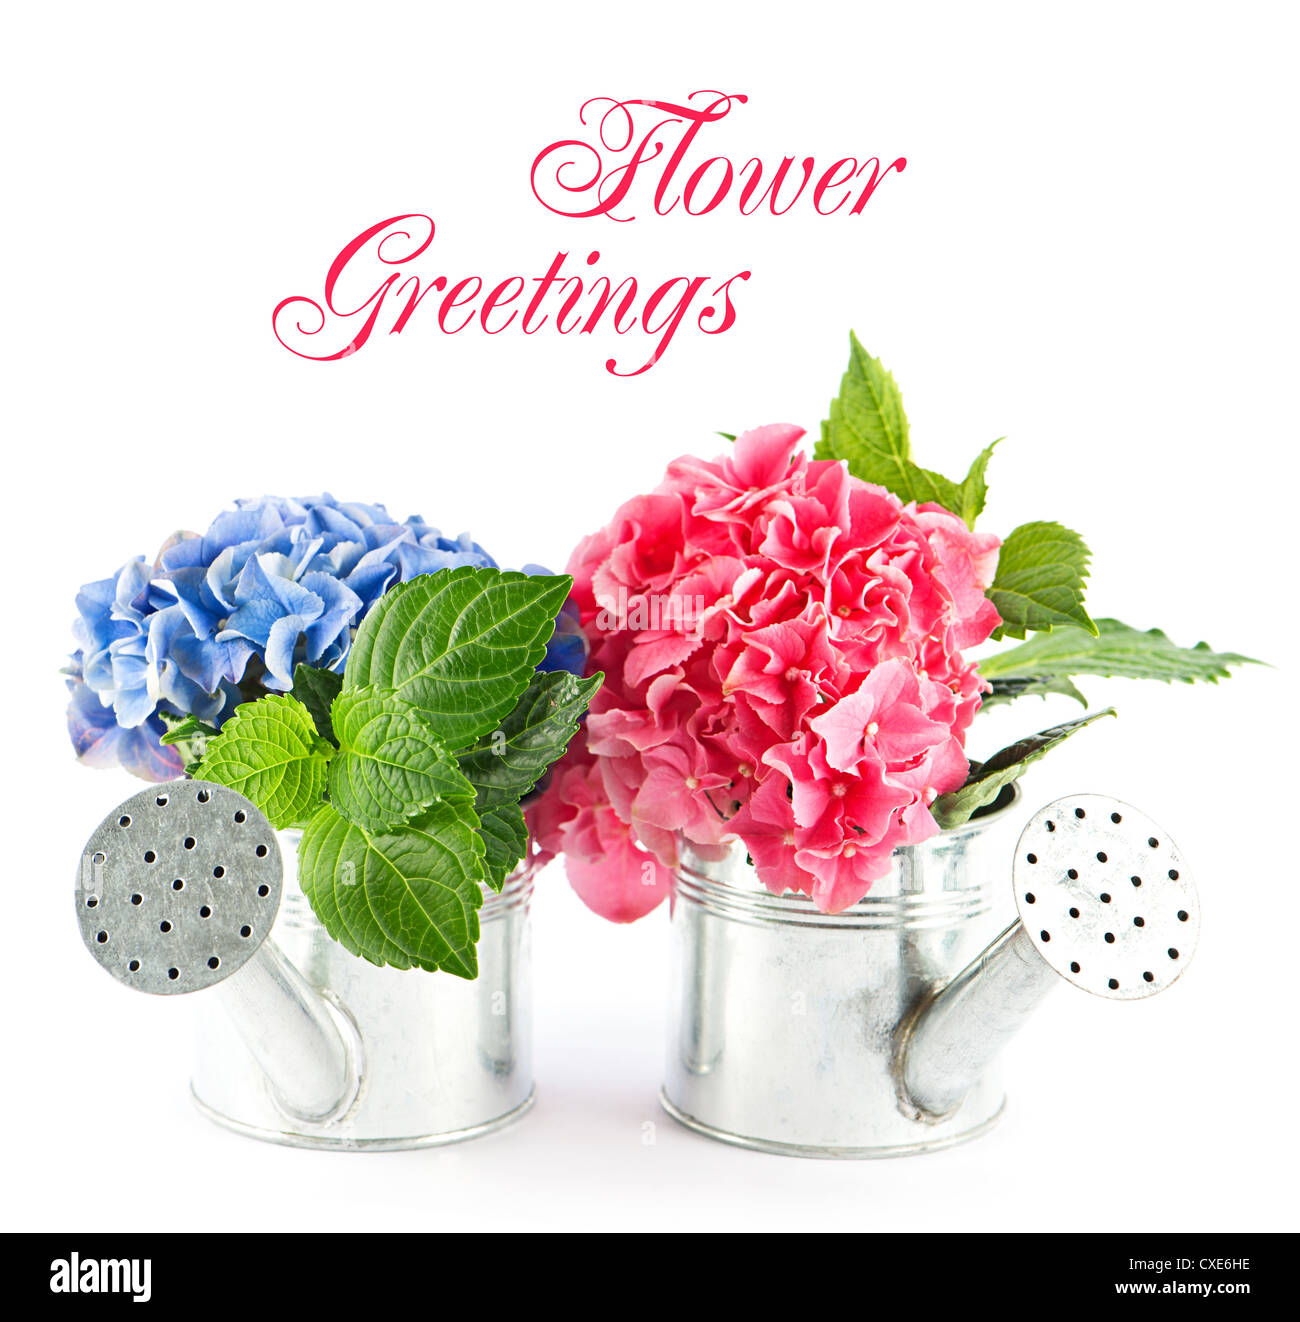 Flower Greetings Stock Photos Flower Greetings Stock Images Alamy